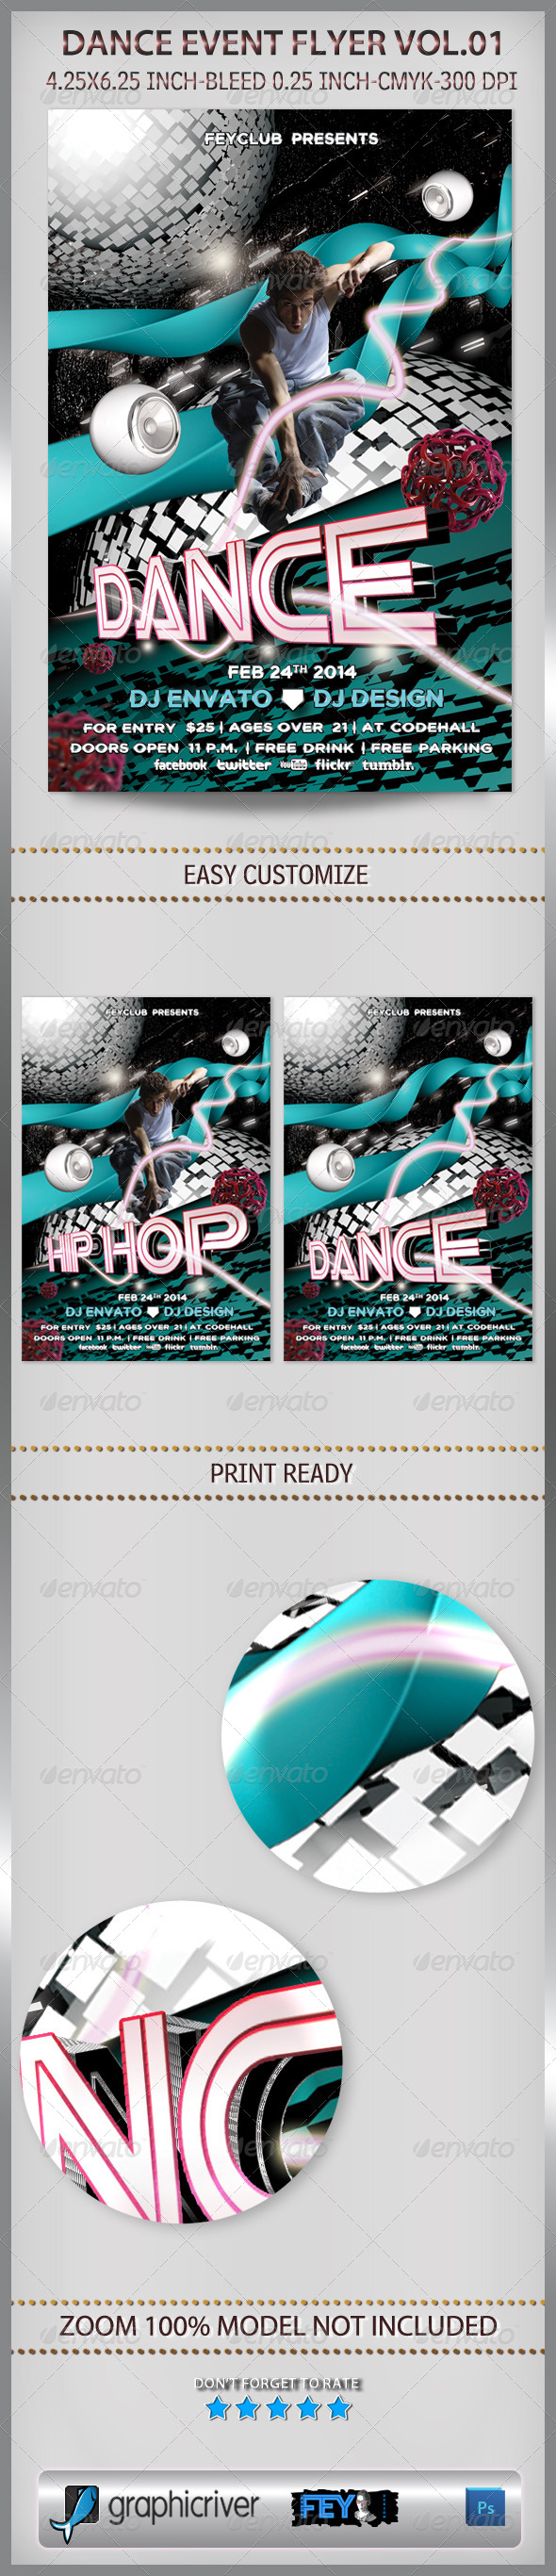 Dance Event Flyer Vol.01 - Events Flyers